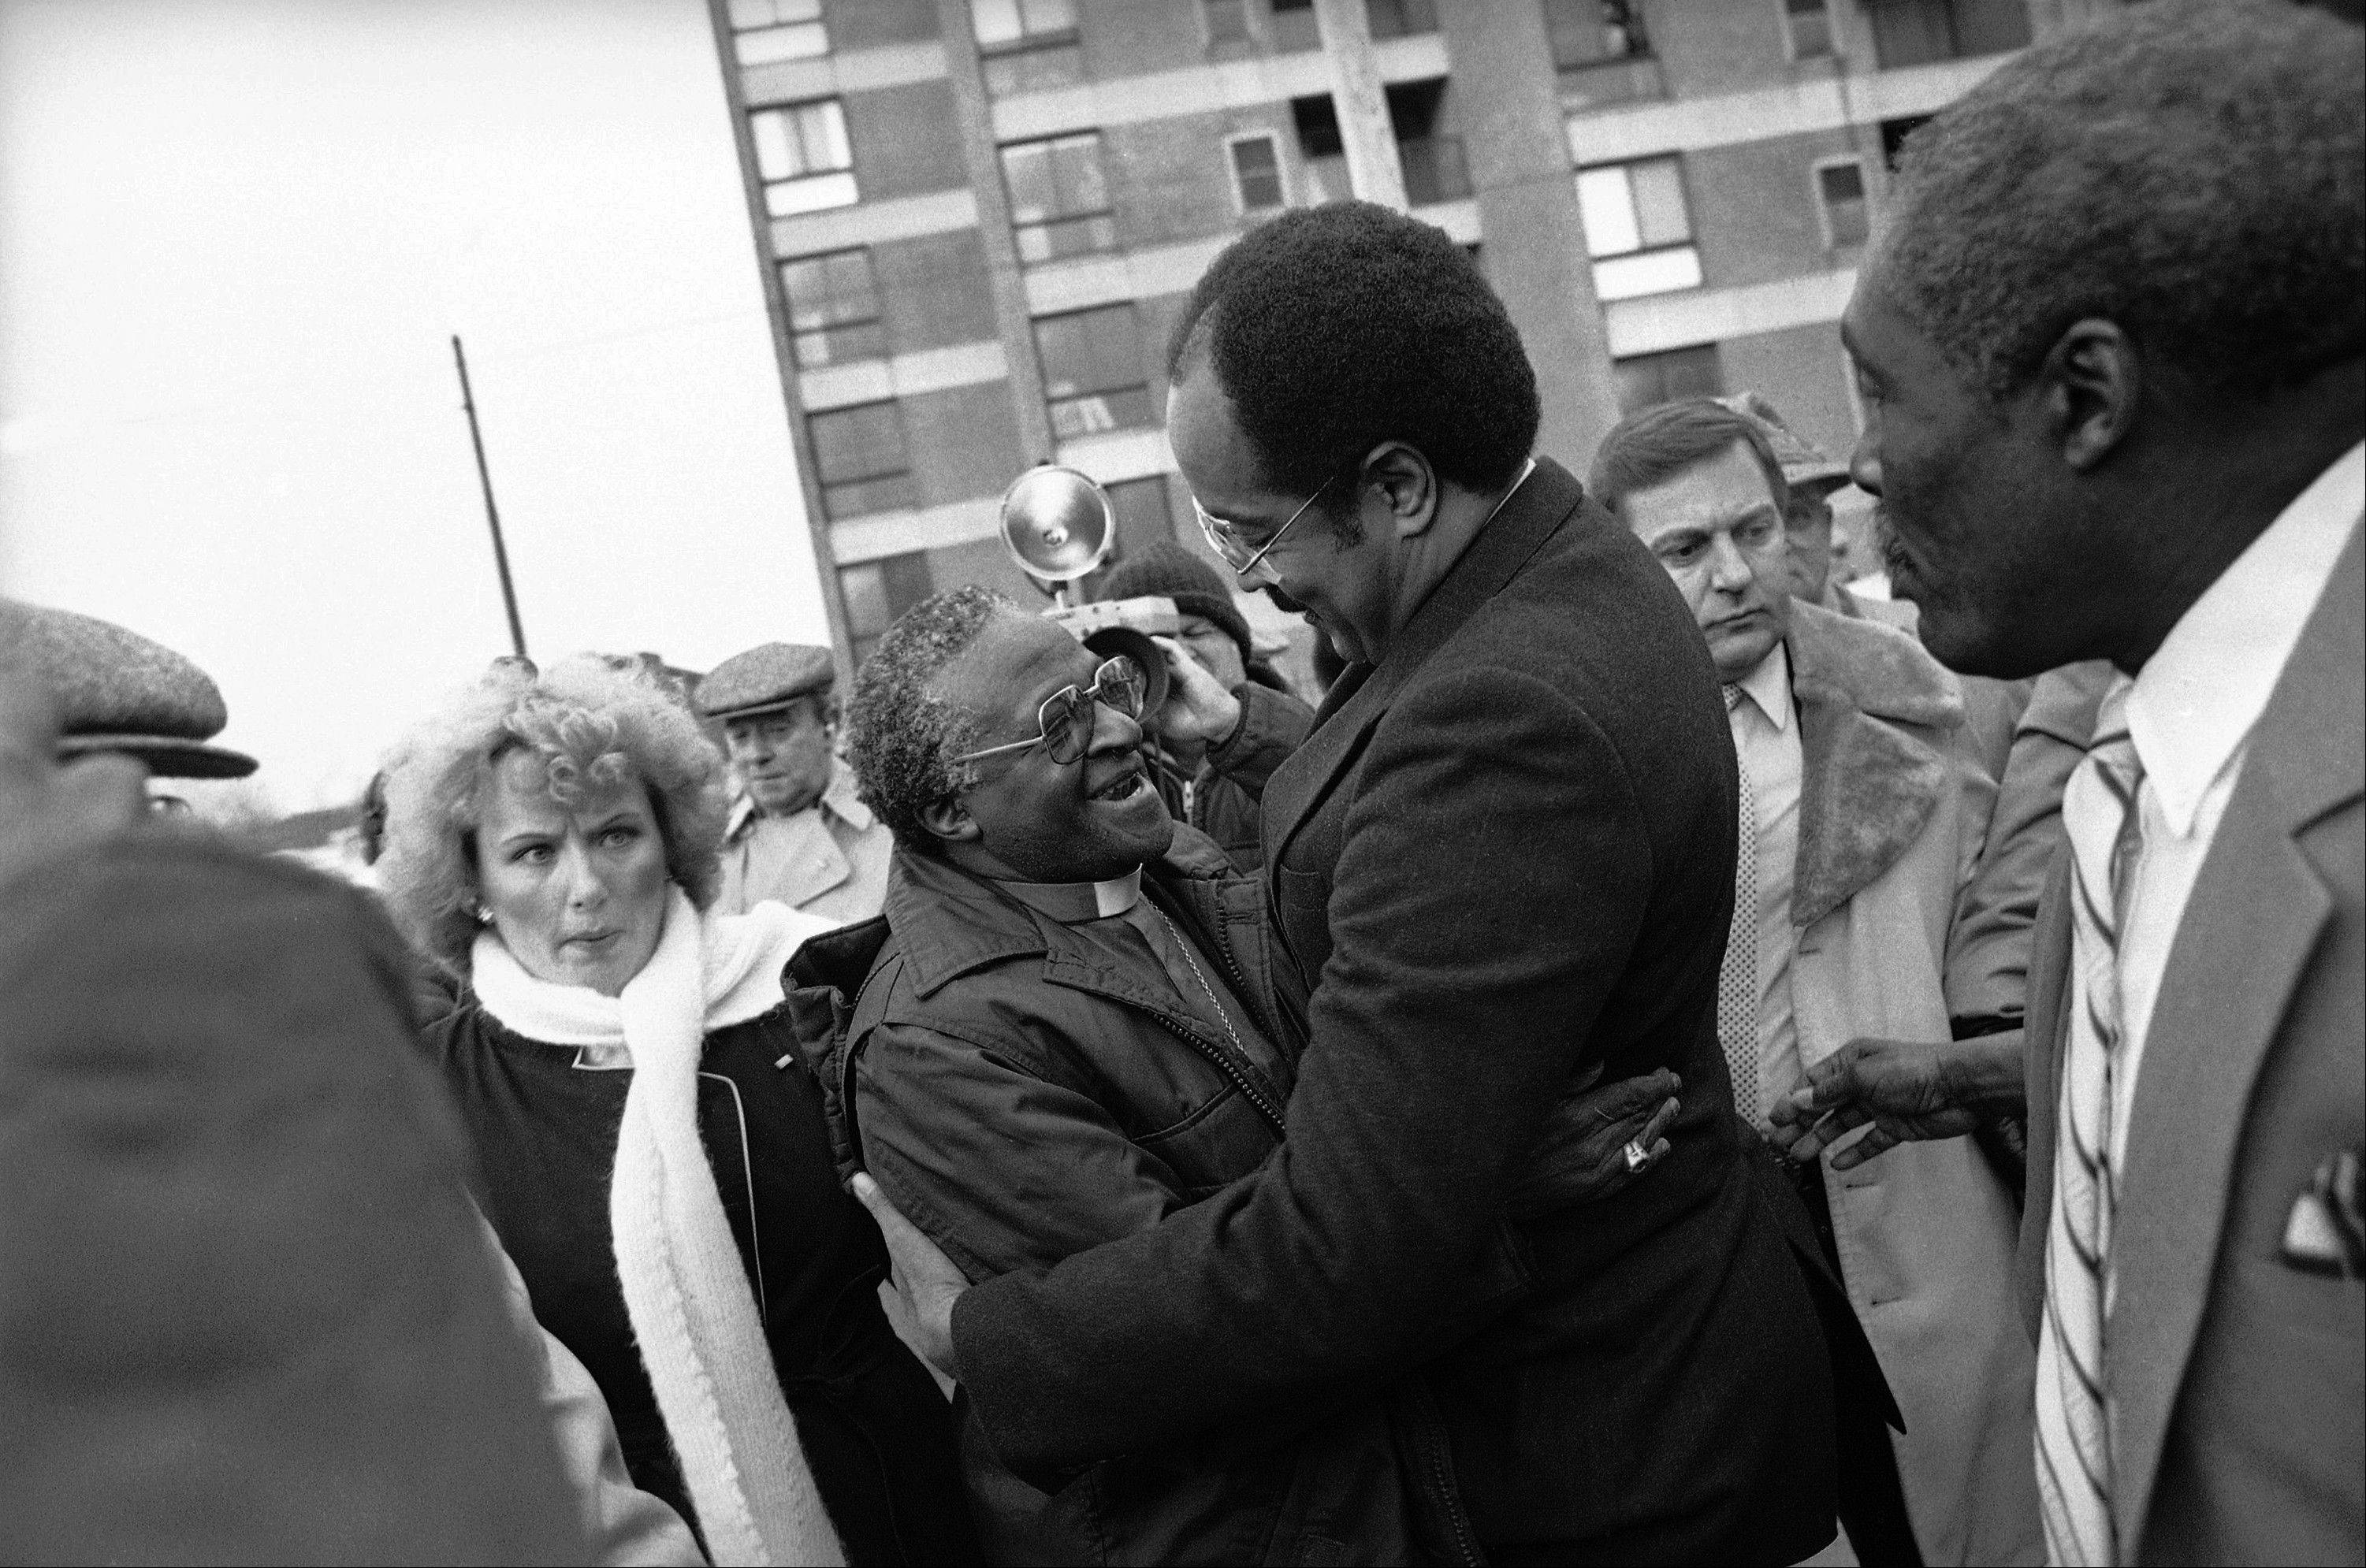 In this Jan. 14, 1986, file photo, Bishop Desmond Tutu, left, is greeted by Rep. William H. Gray III, who just returned from a trip to South Africa, outside Philadelphia's Bright Hope Baptist Church. Gray, who rose to influential positions in Congress while remaining pastor of his north Philadelphia church for 3½ decades, has died, a family spokesman said Monday, July 1. He was 71.